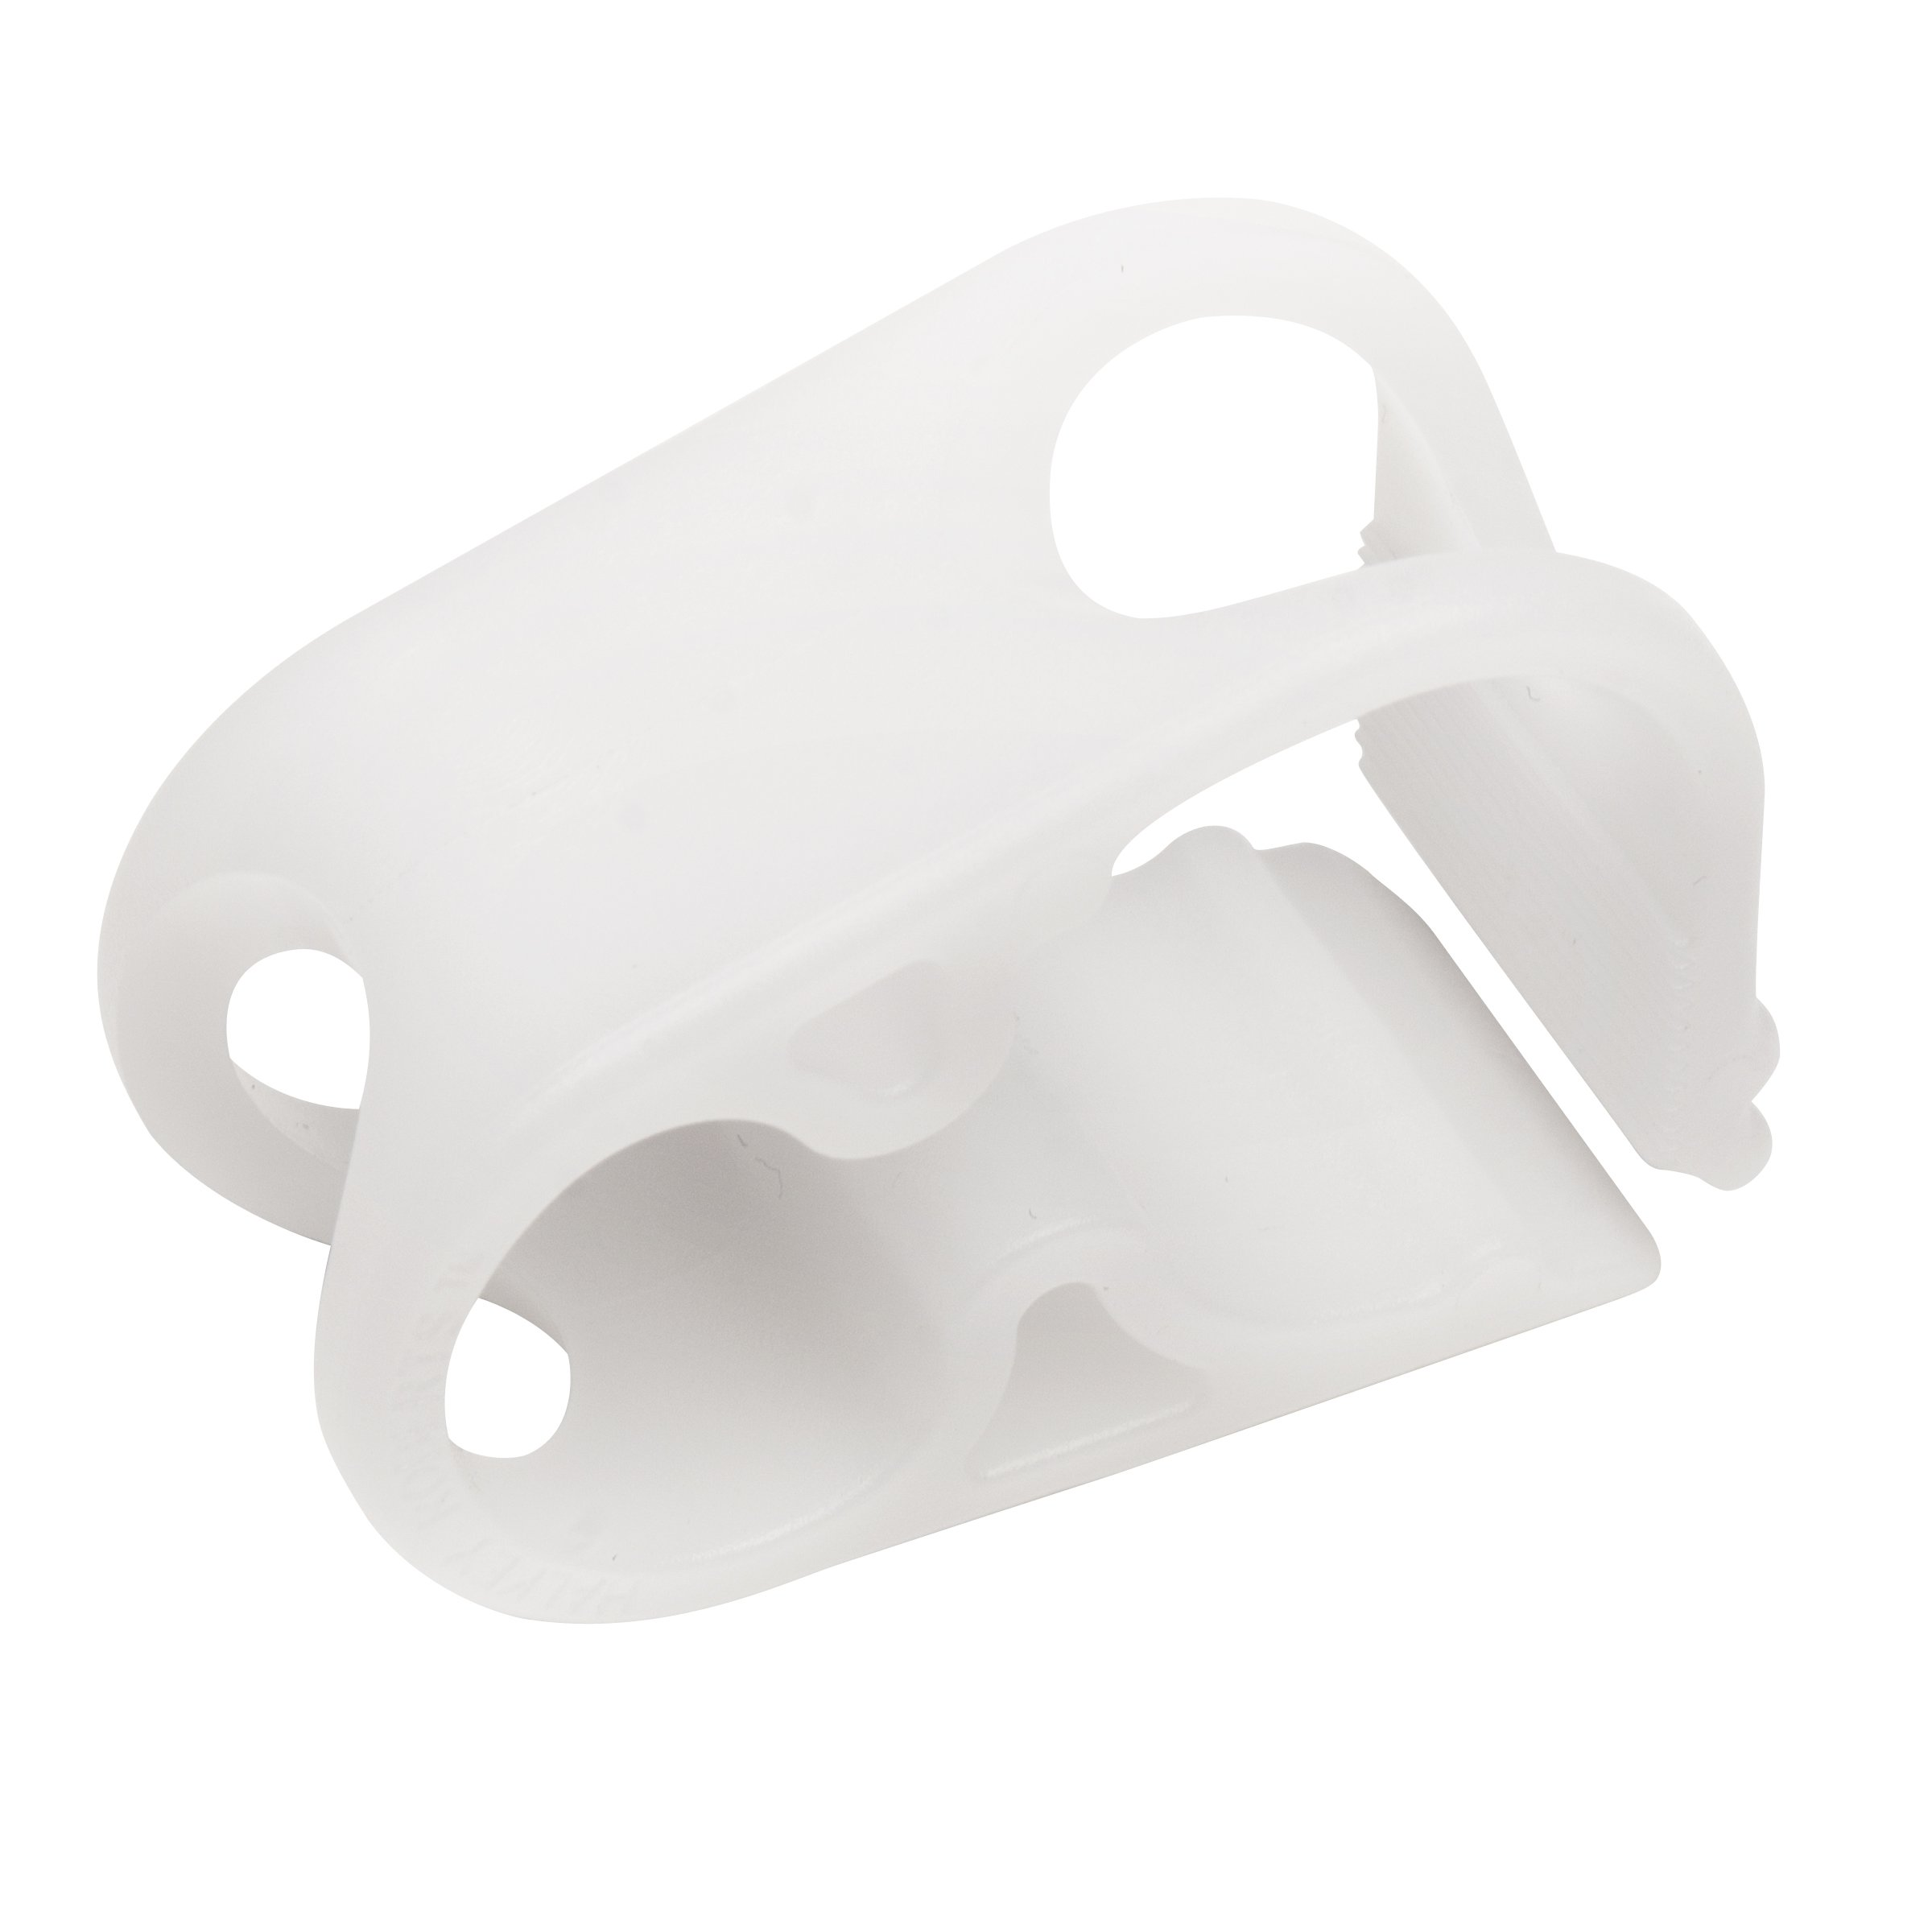 Bel-Art Acetal Mid-Range Plastic Tubing Clamps; for ⅛ to ⁷⁄₁₆ in. O.D. Tubing (Pack of 12) (F18228-0000) by SP Scienceware